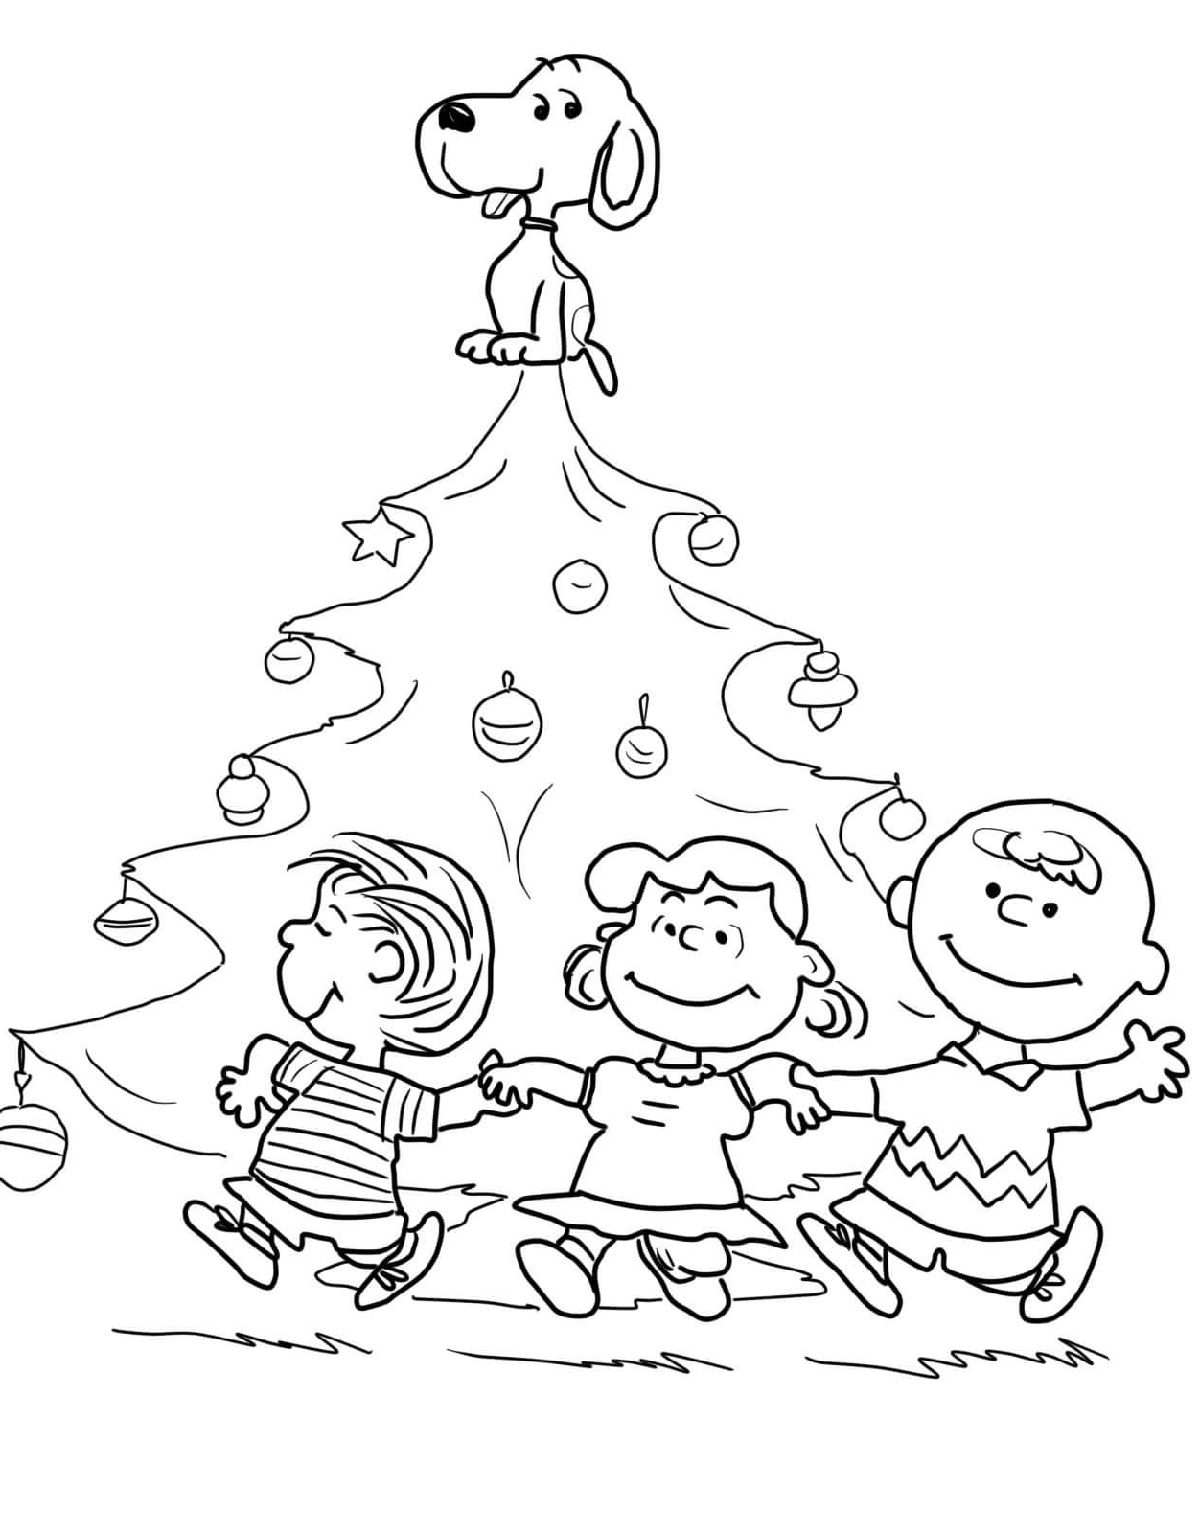 Snoopy Christmas Coloring Pages For Cartoon Lovers